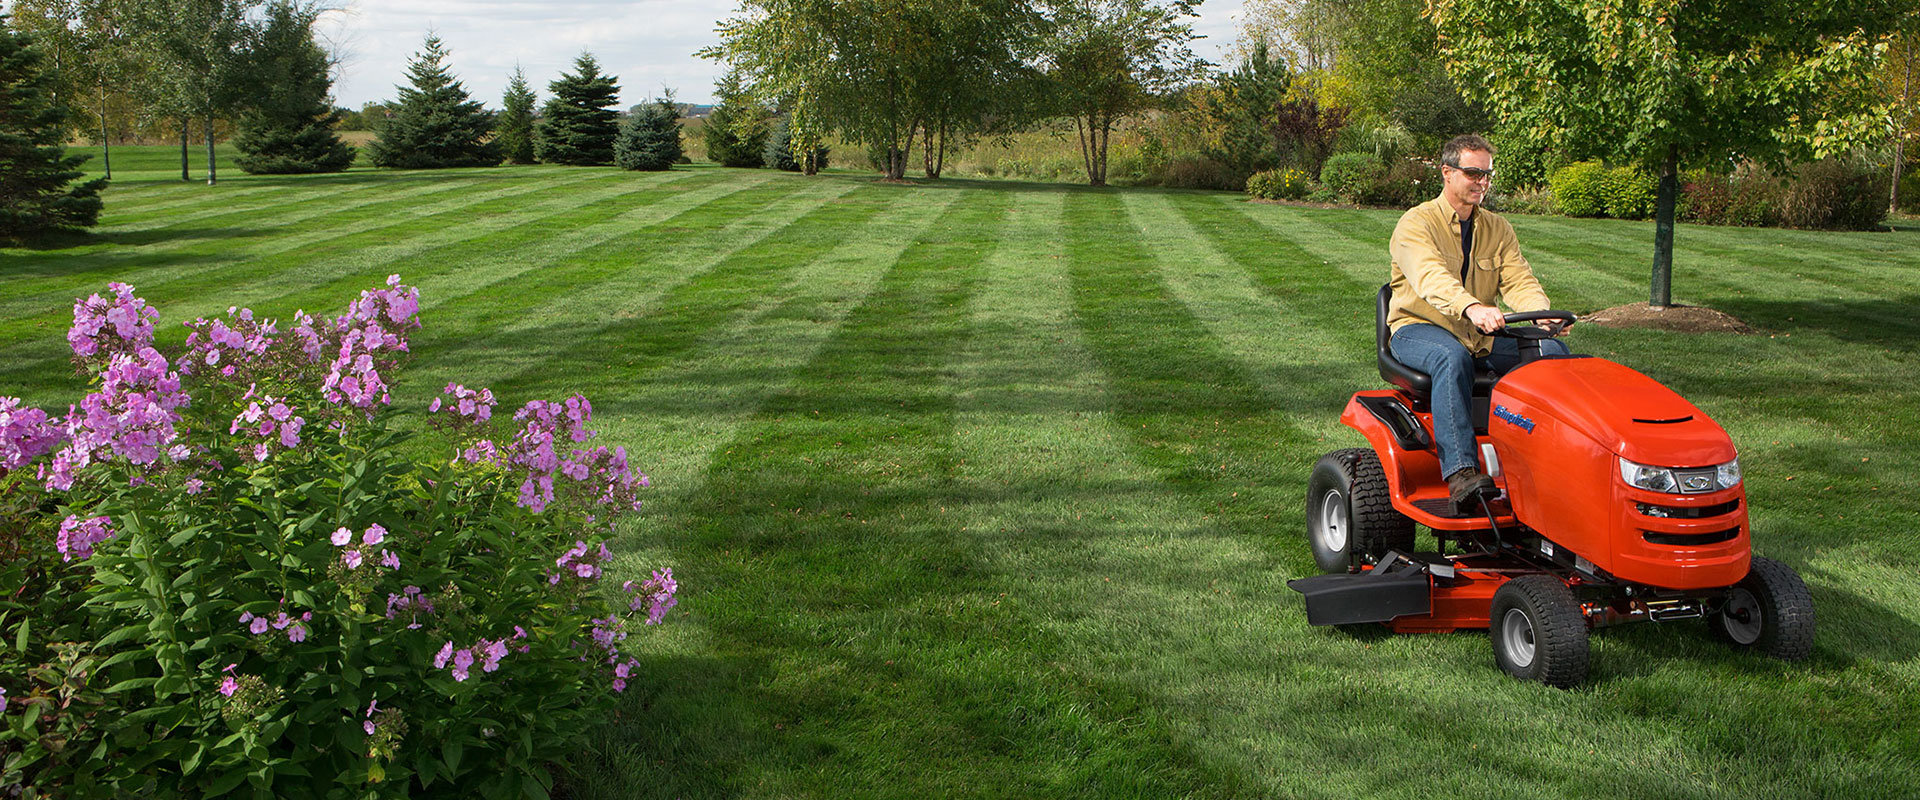 Power & Lawn Equipment: Lawn Mowers, Simplicity Lawn and